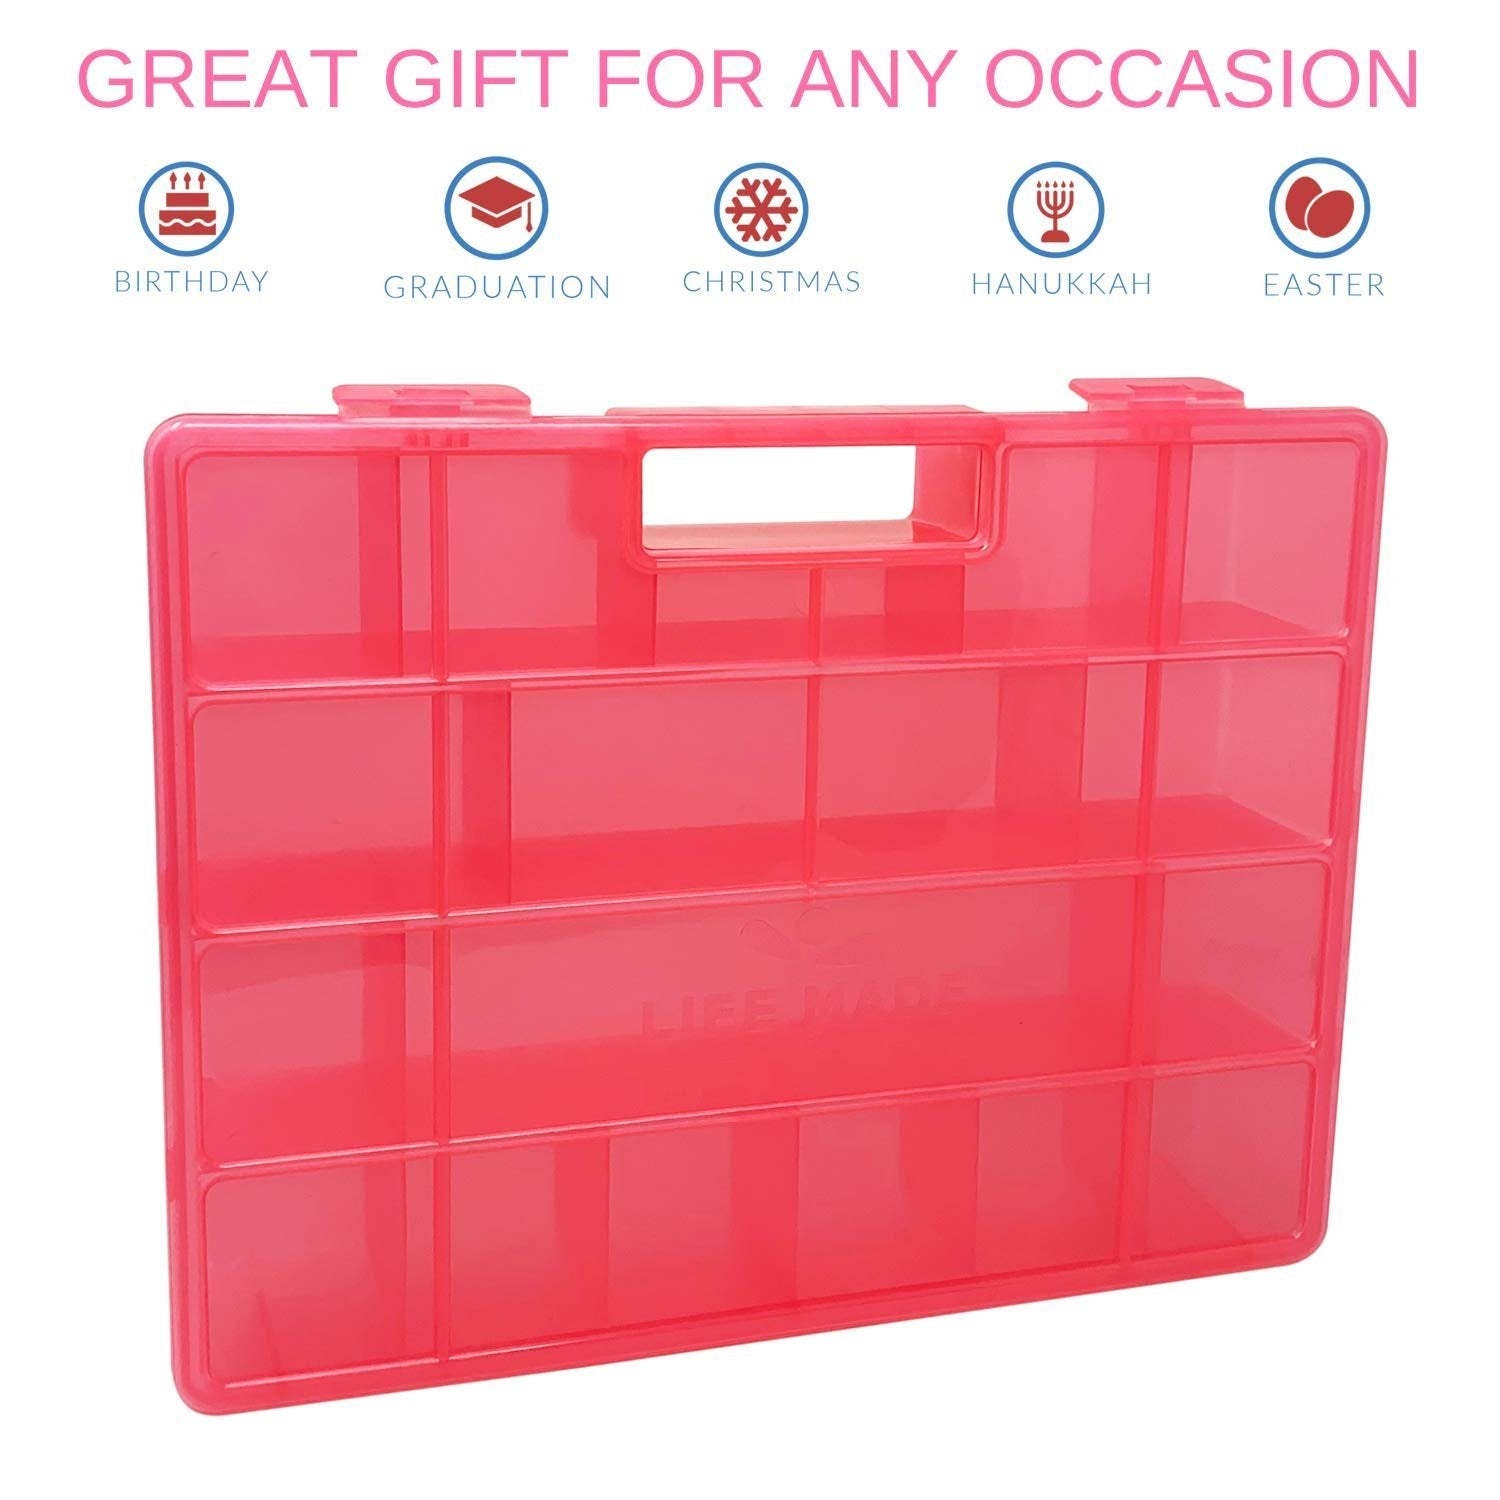 Life Made Better Pink Toy Storage Organize, Durable, Stronger Handle, Toy Case Organizer Compatible with Fortnite Figures, Not Made by Fortnite